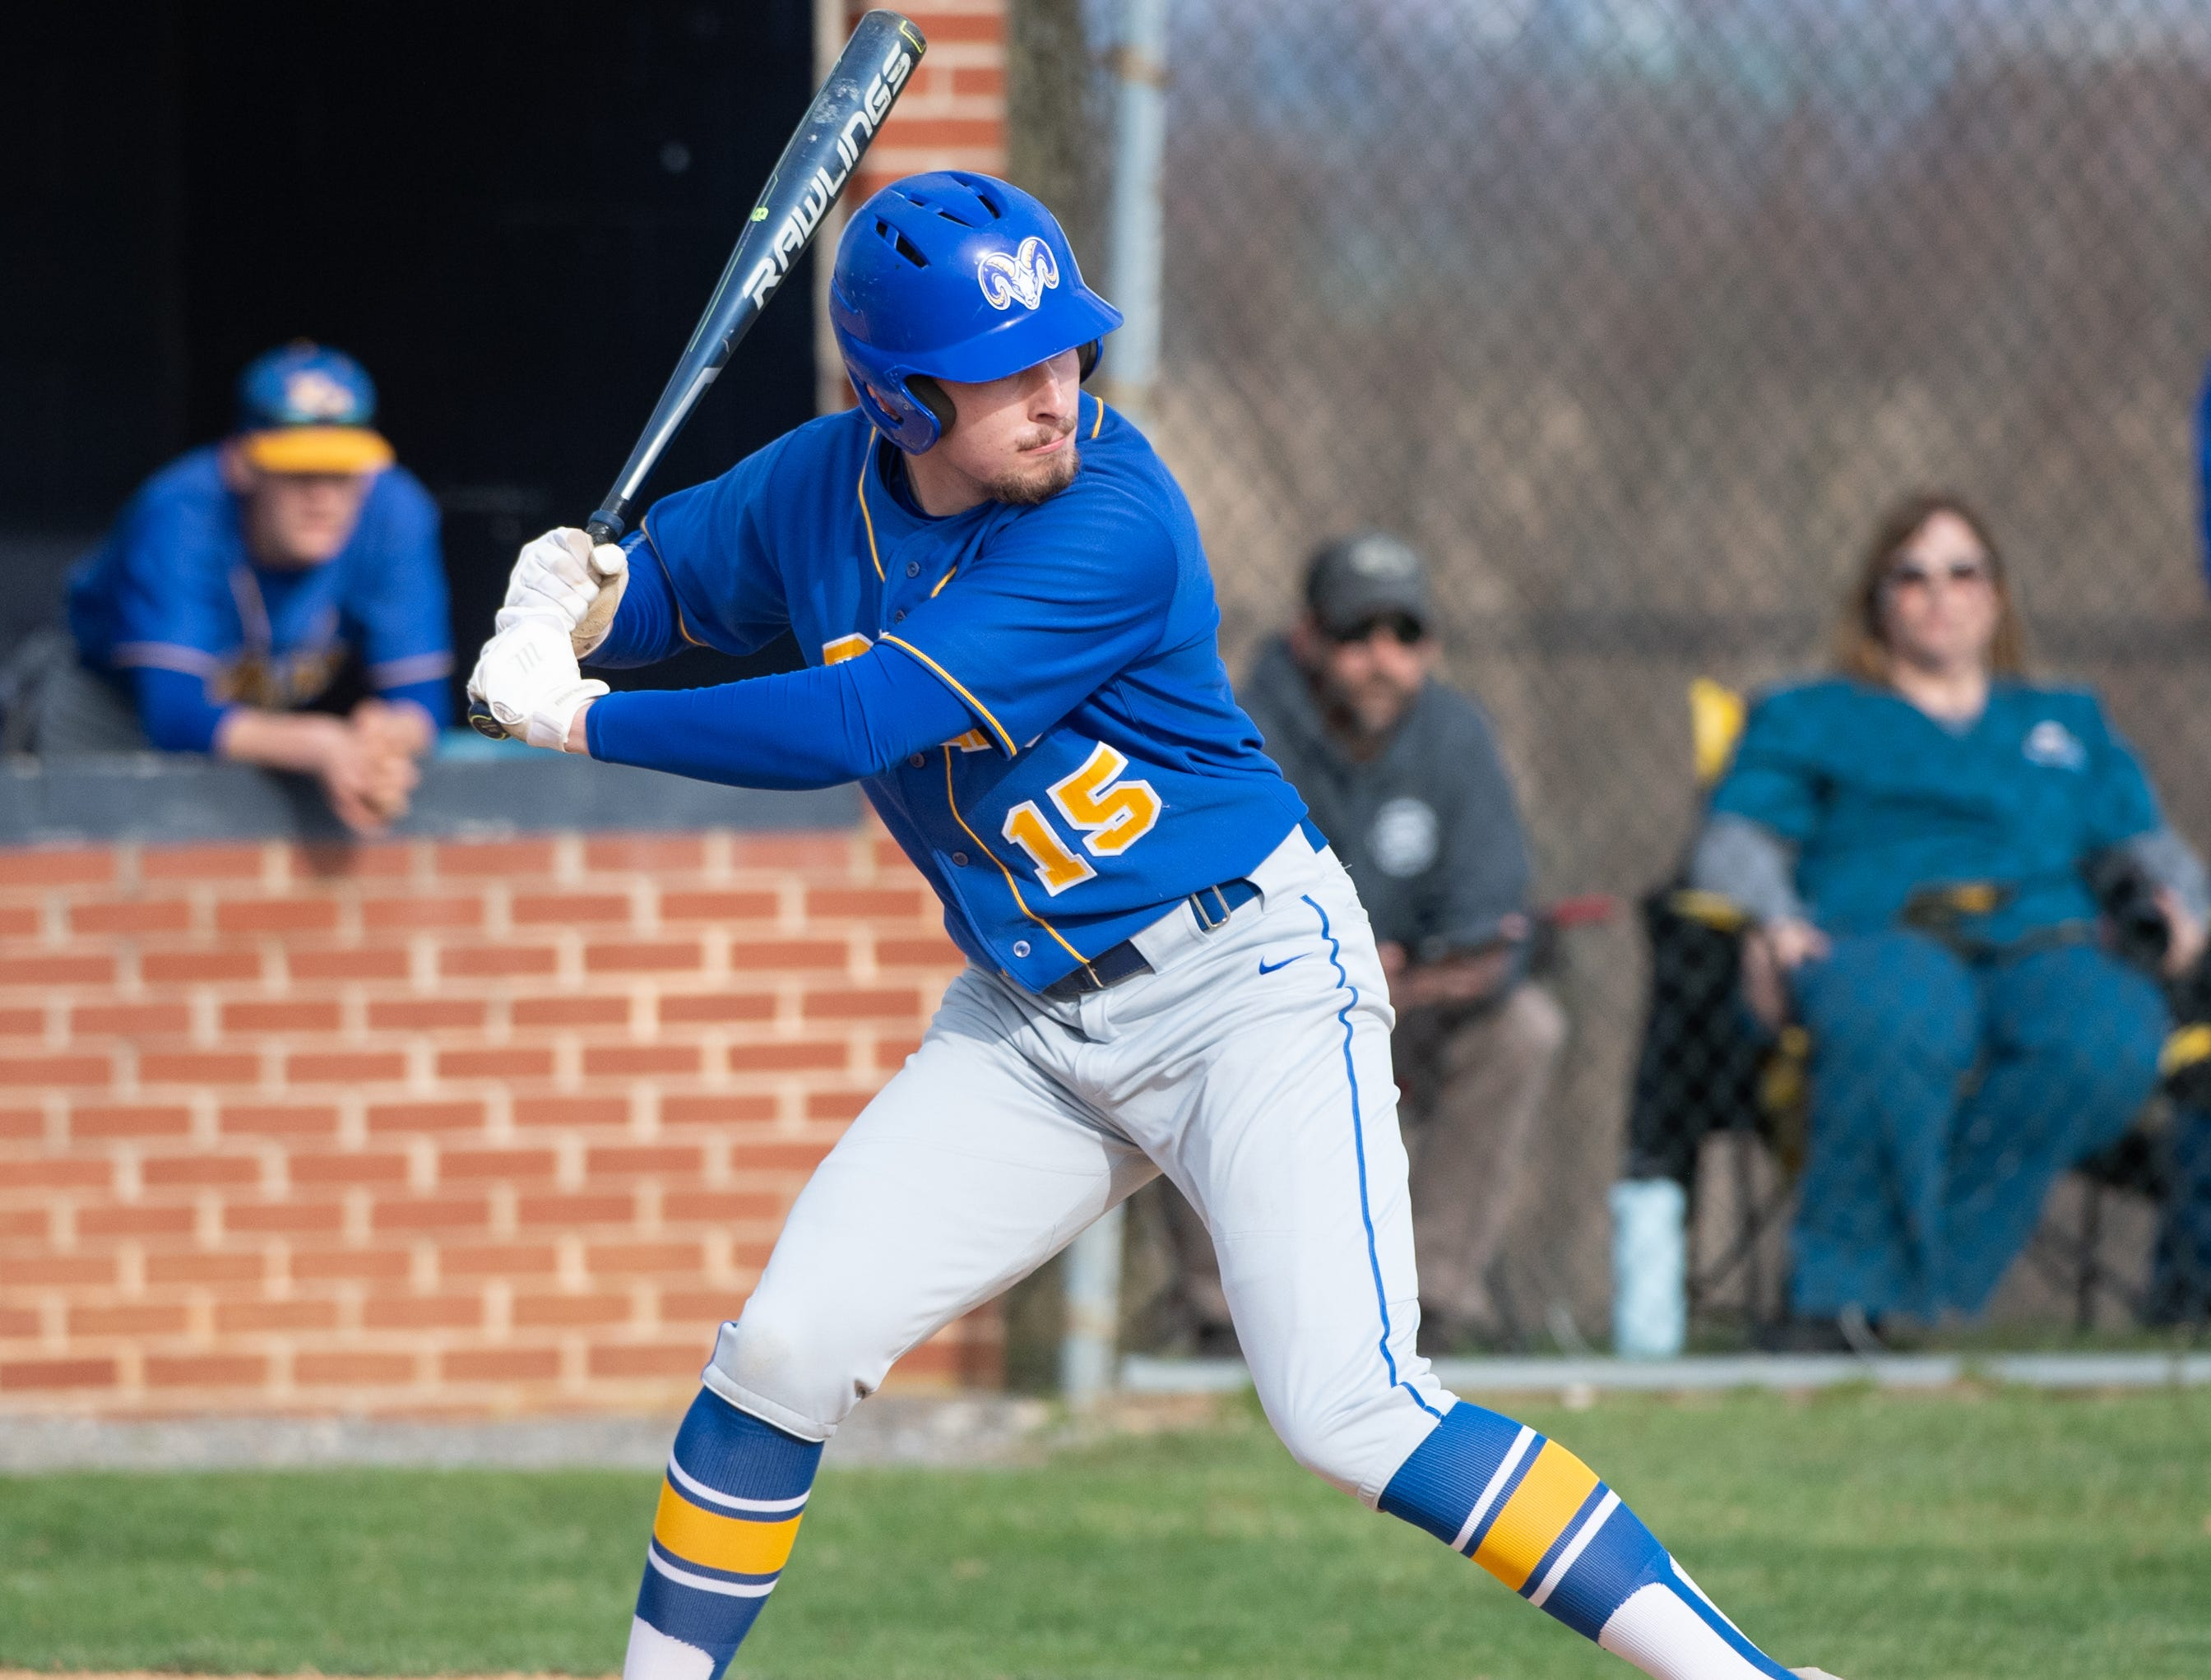 Garrett Lowe (15) gets ready to swing during the baseball game between Eastern York and Kennard-Dale, April 10, 2019 at Eastern York High School. The Golden Knights defeated the Rams 8 to 1.